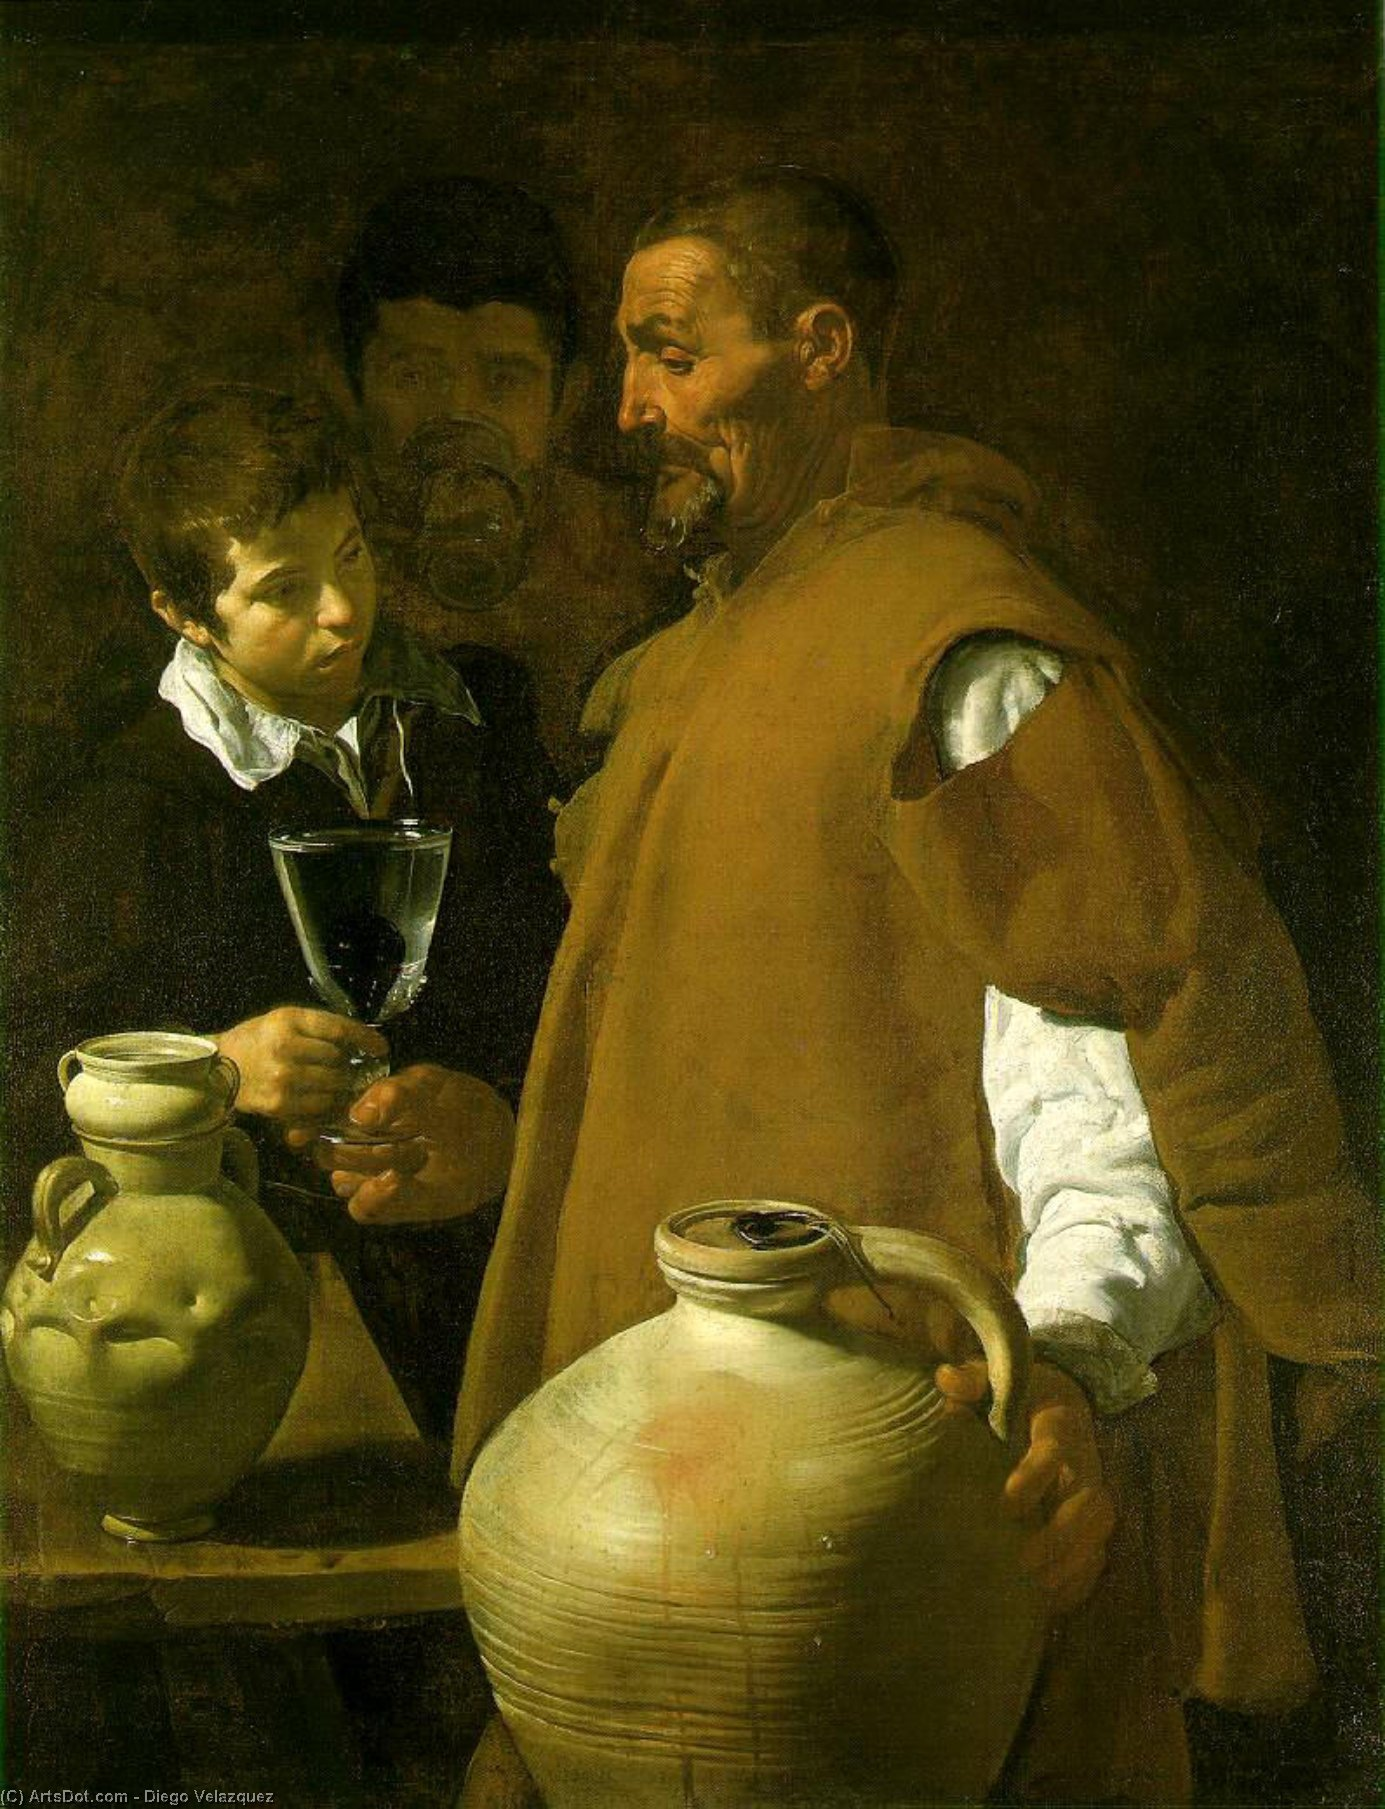 Waterseller siviglia di Diego Velazquez (1599-1660, Spain)